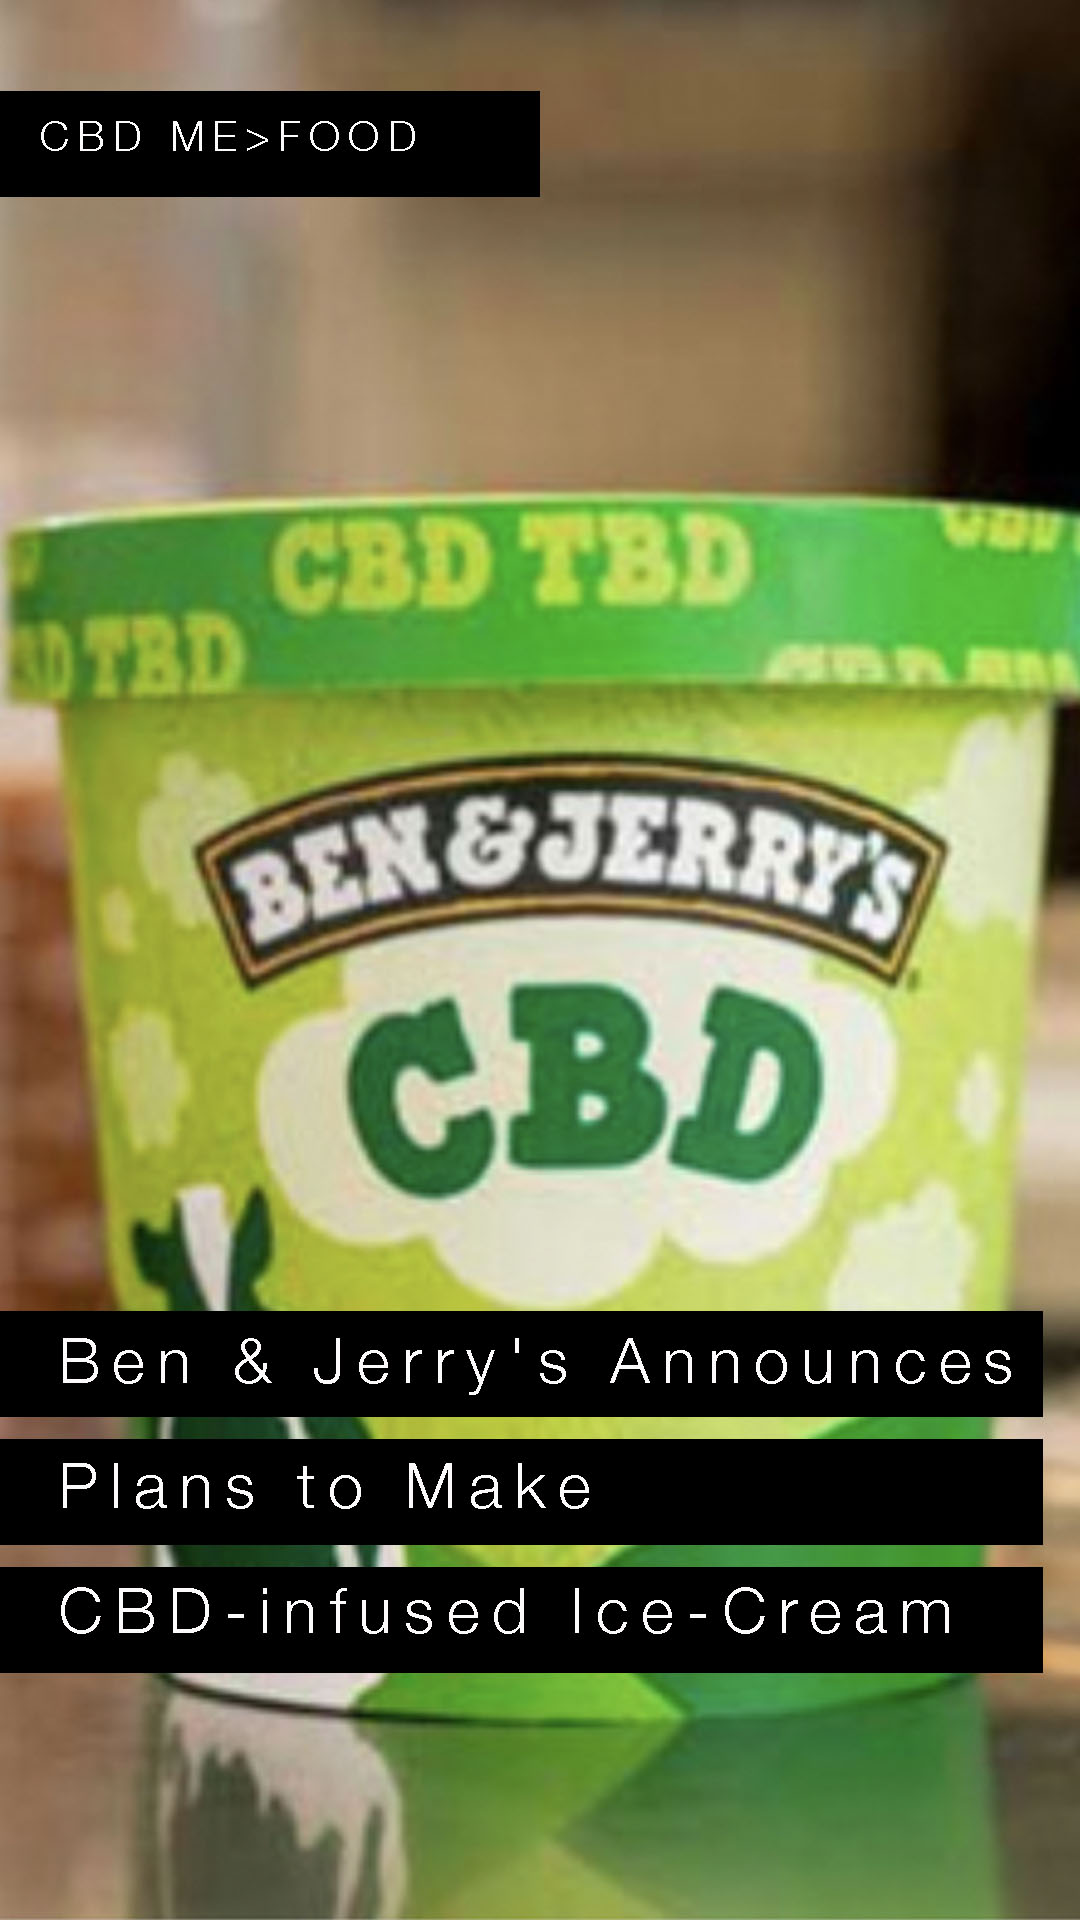 BEN & JERRY'S CBD ICE CREAM